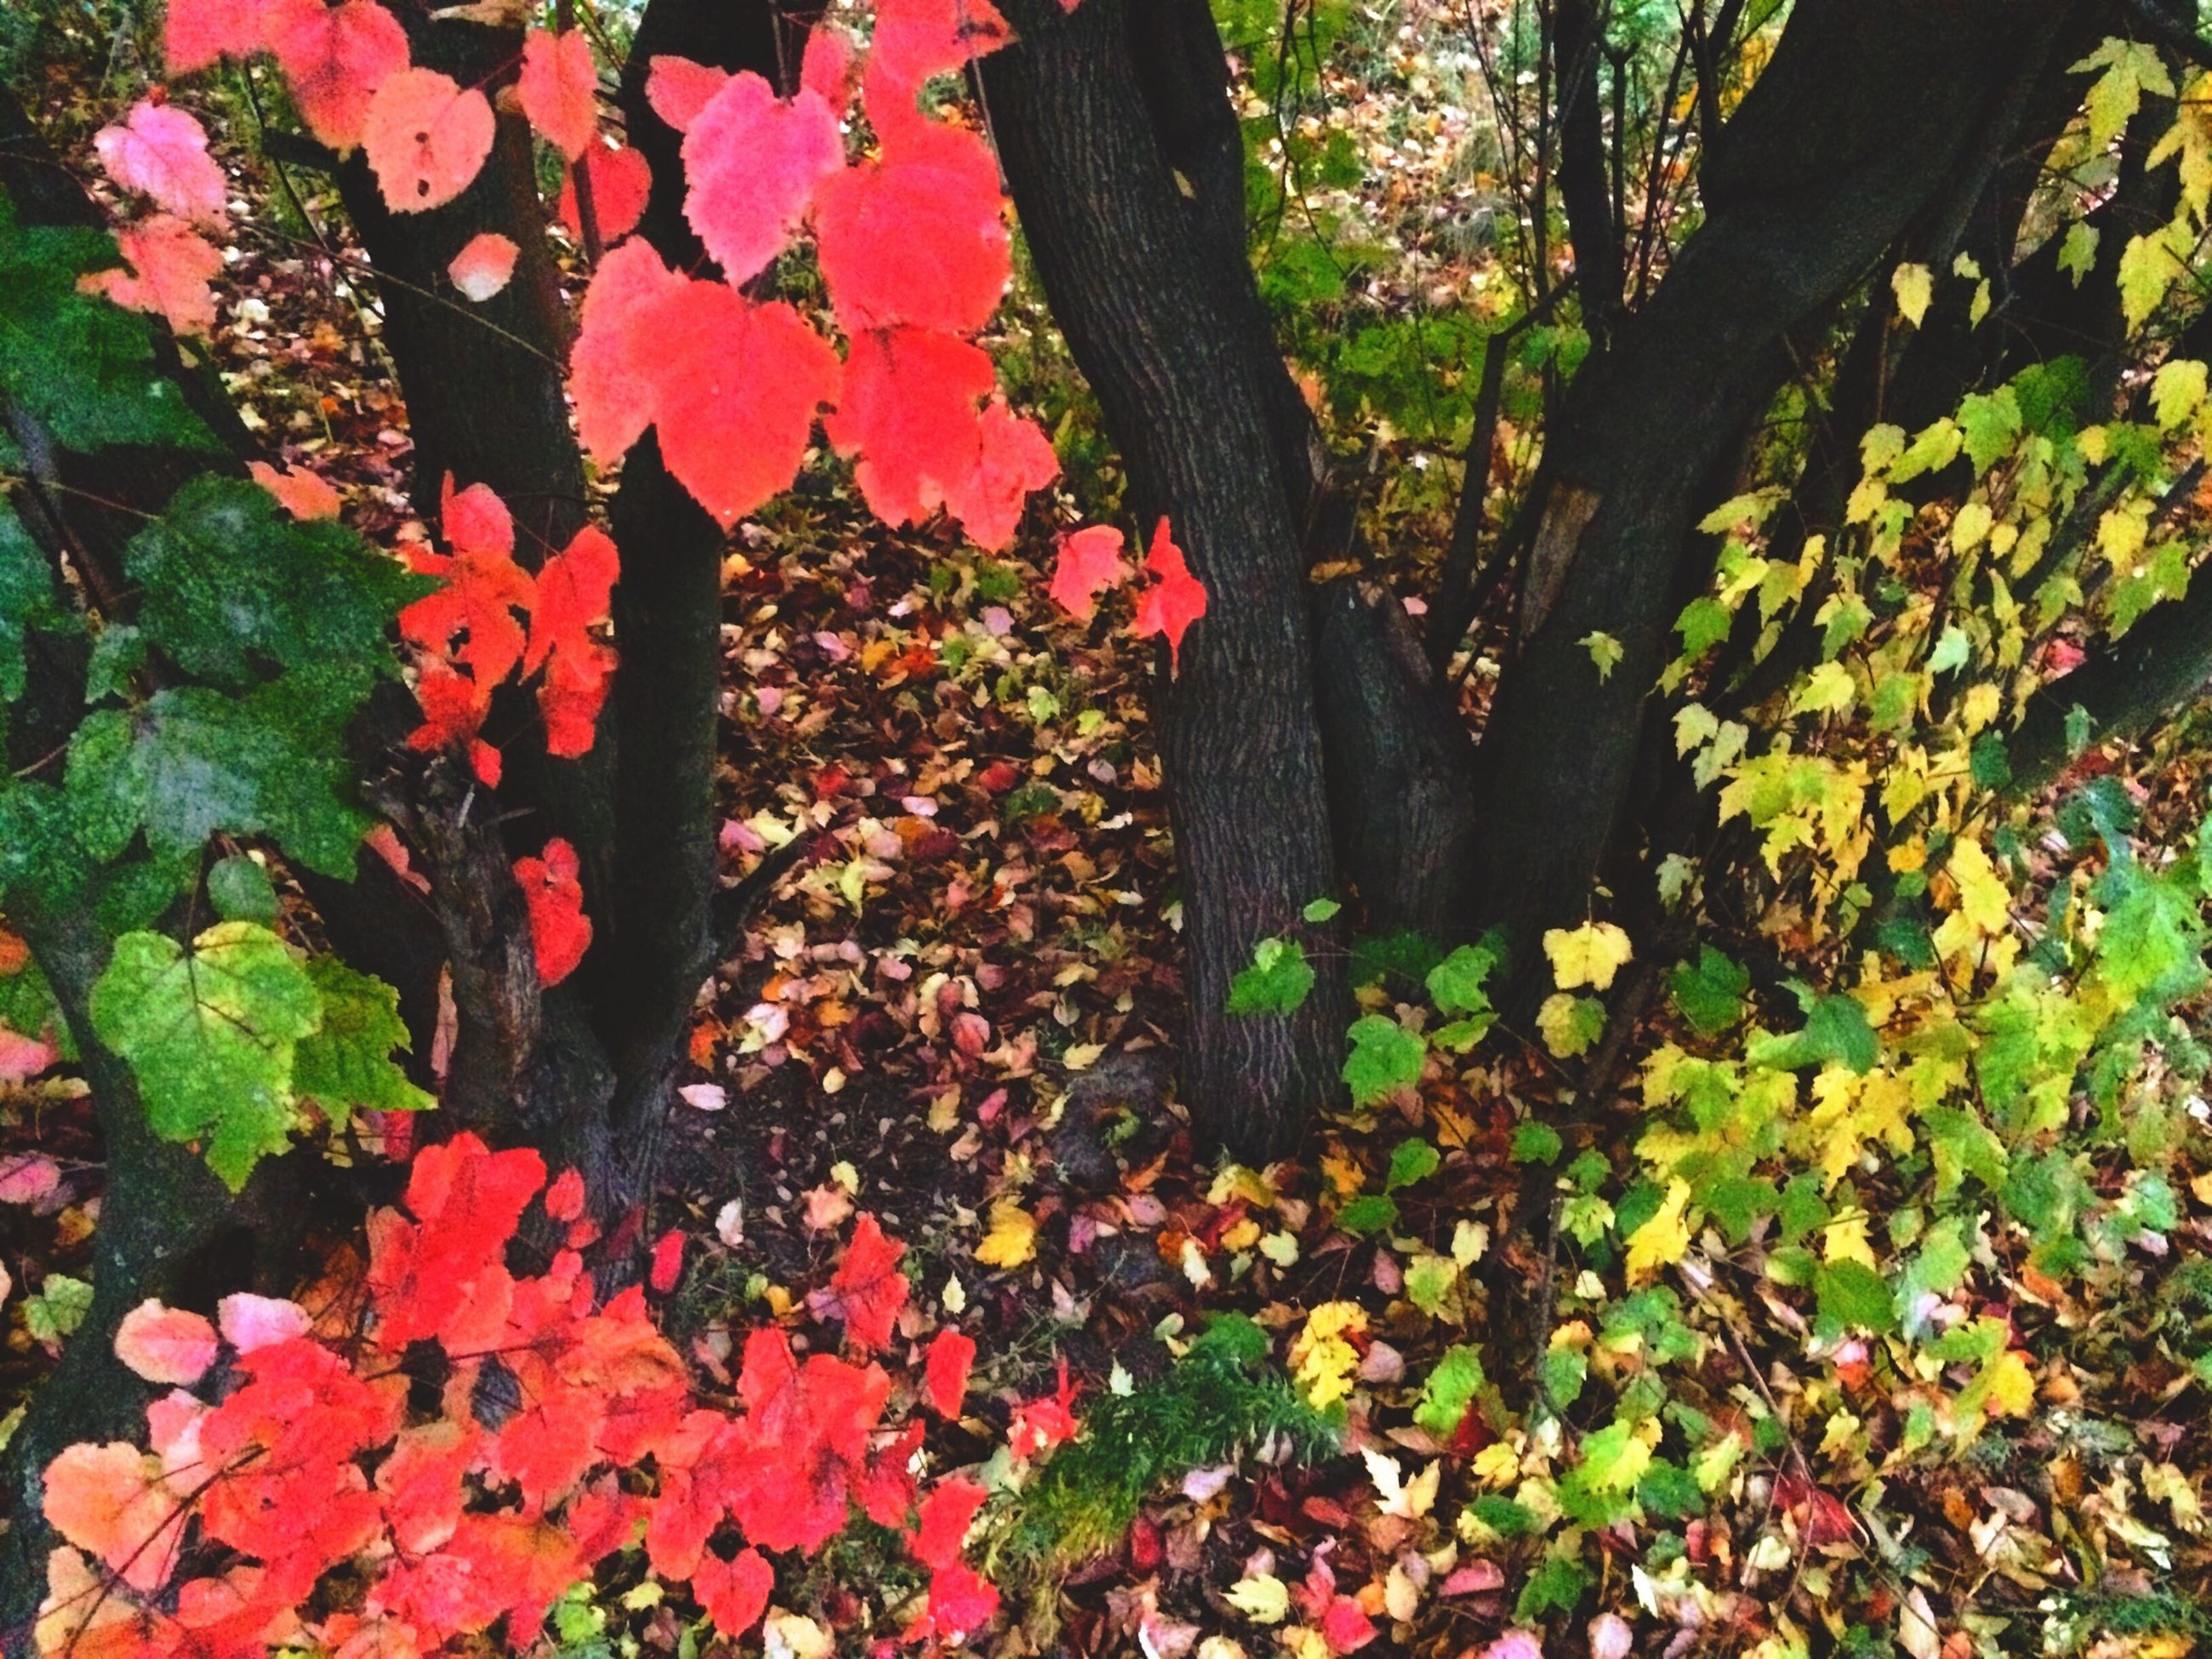 growth, flower, leaf, beauty in nature, nature, plant, red, tree, freshness, green color, tranquility, fragility, day, tree trunk, park - man made space, outdoors, season, autumn, high angle view, change